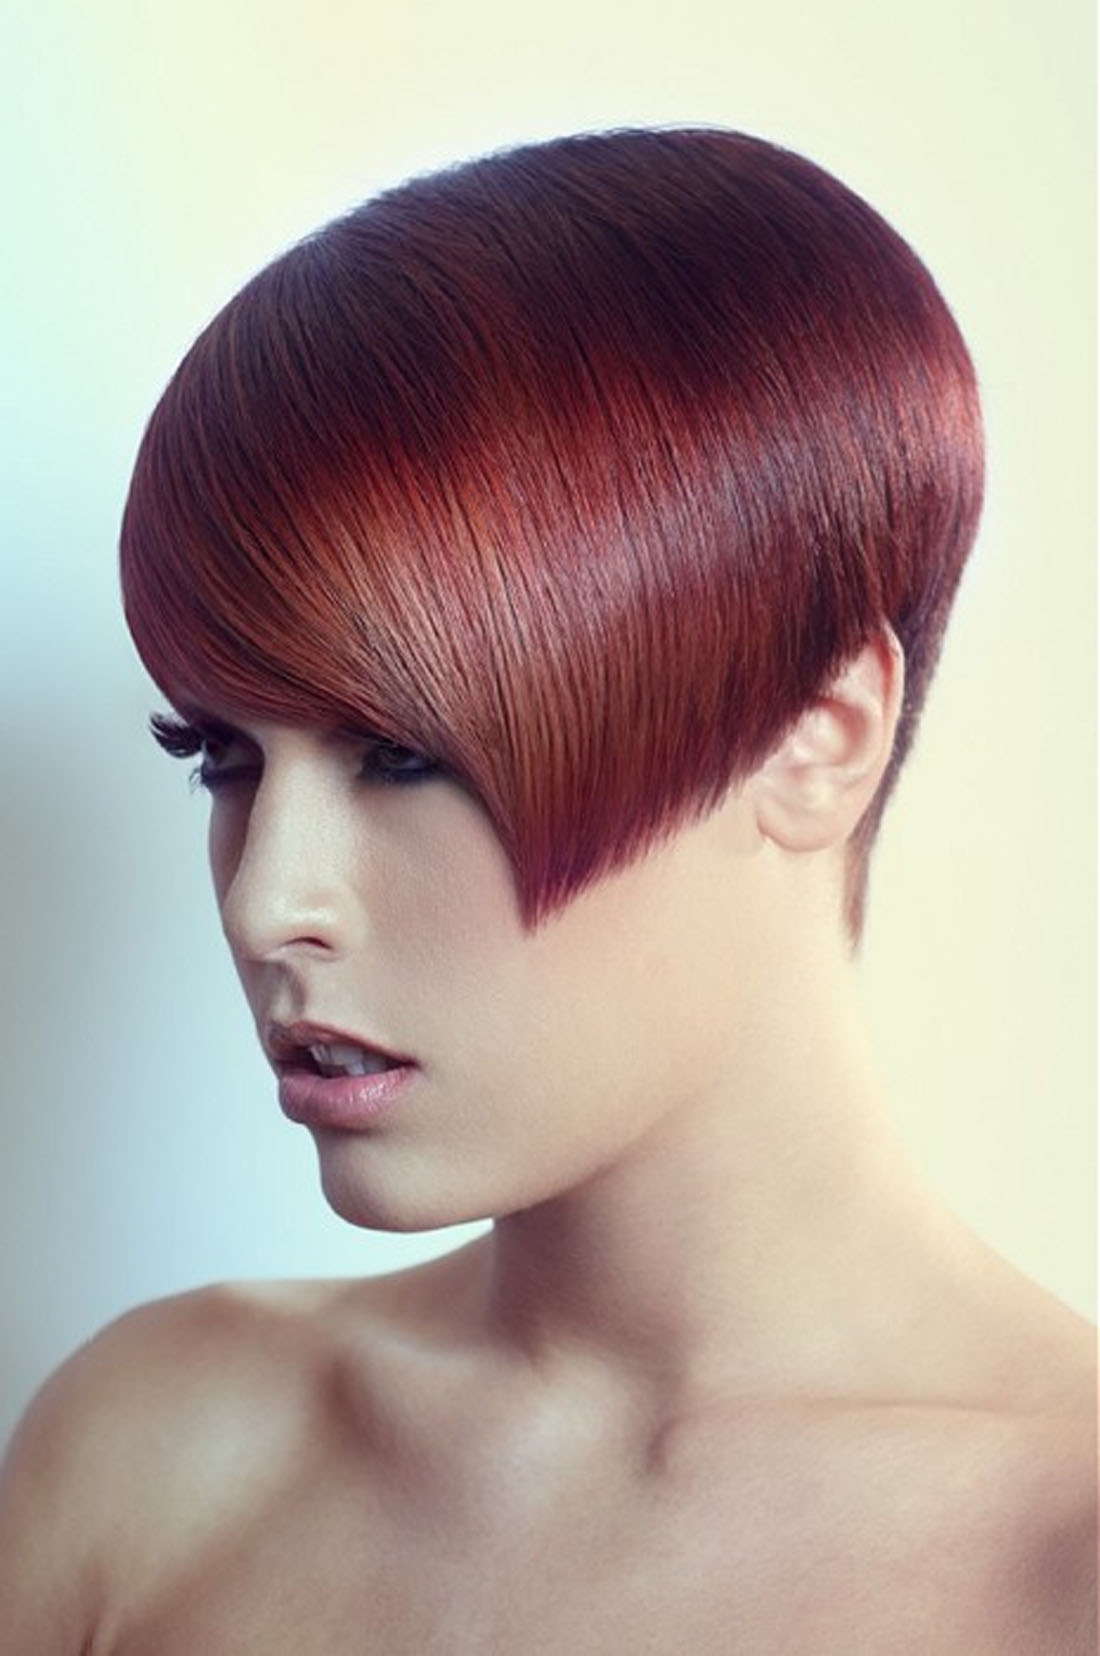 coloring short hair styles capelli corti guida alla scelta colore migliore 5015 | hairstyles as 2012 hair trend red hair color hair as very short hair 1100x1656